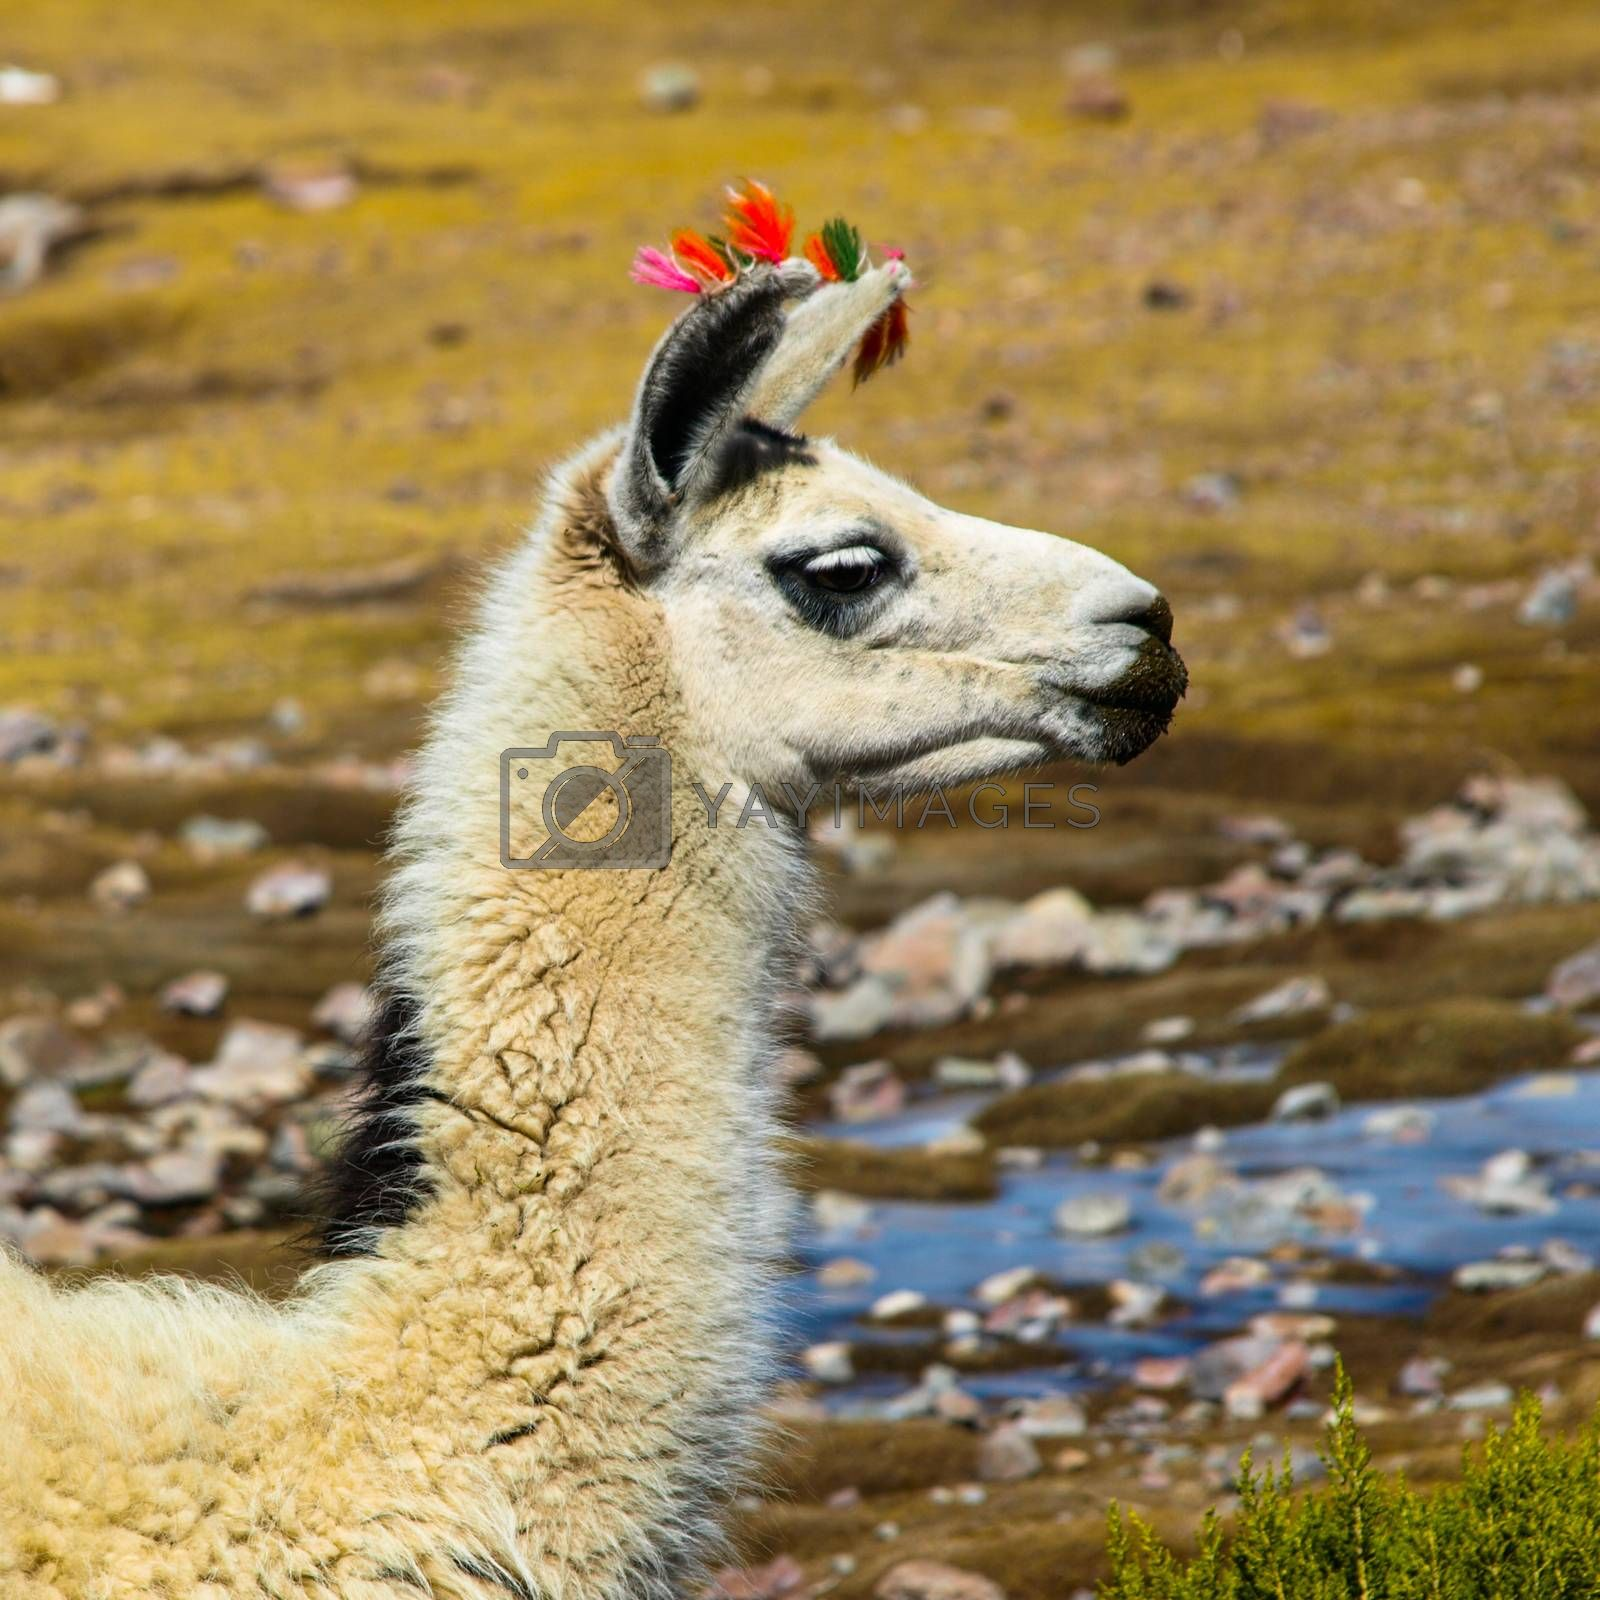 Royalty free image of Llama profile by pyty